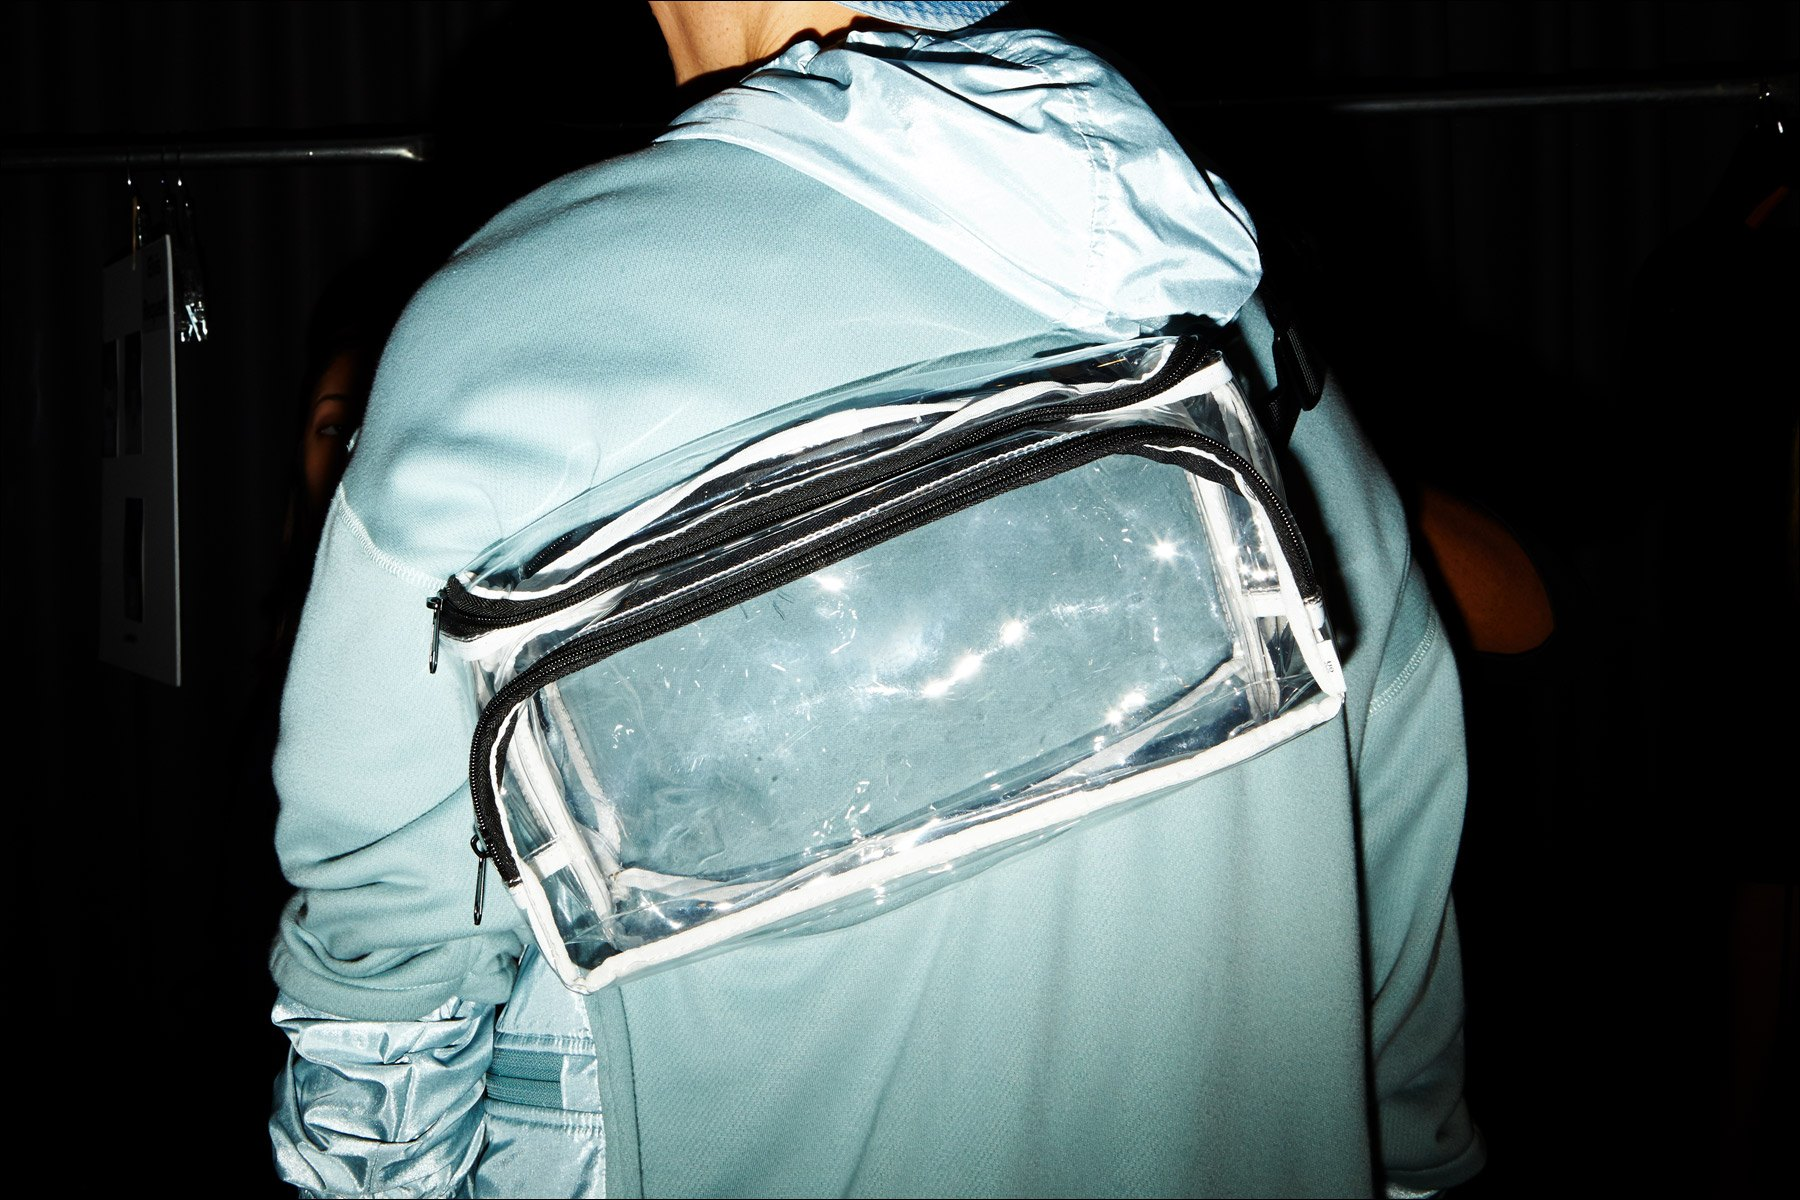 A men's clear bag photographed backstage Matiere for Spring/Summer 2018. Photography by Alexander Thompson for Ponyboy magazine New York.